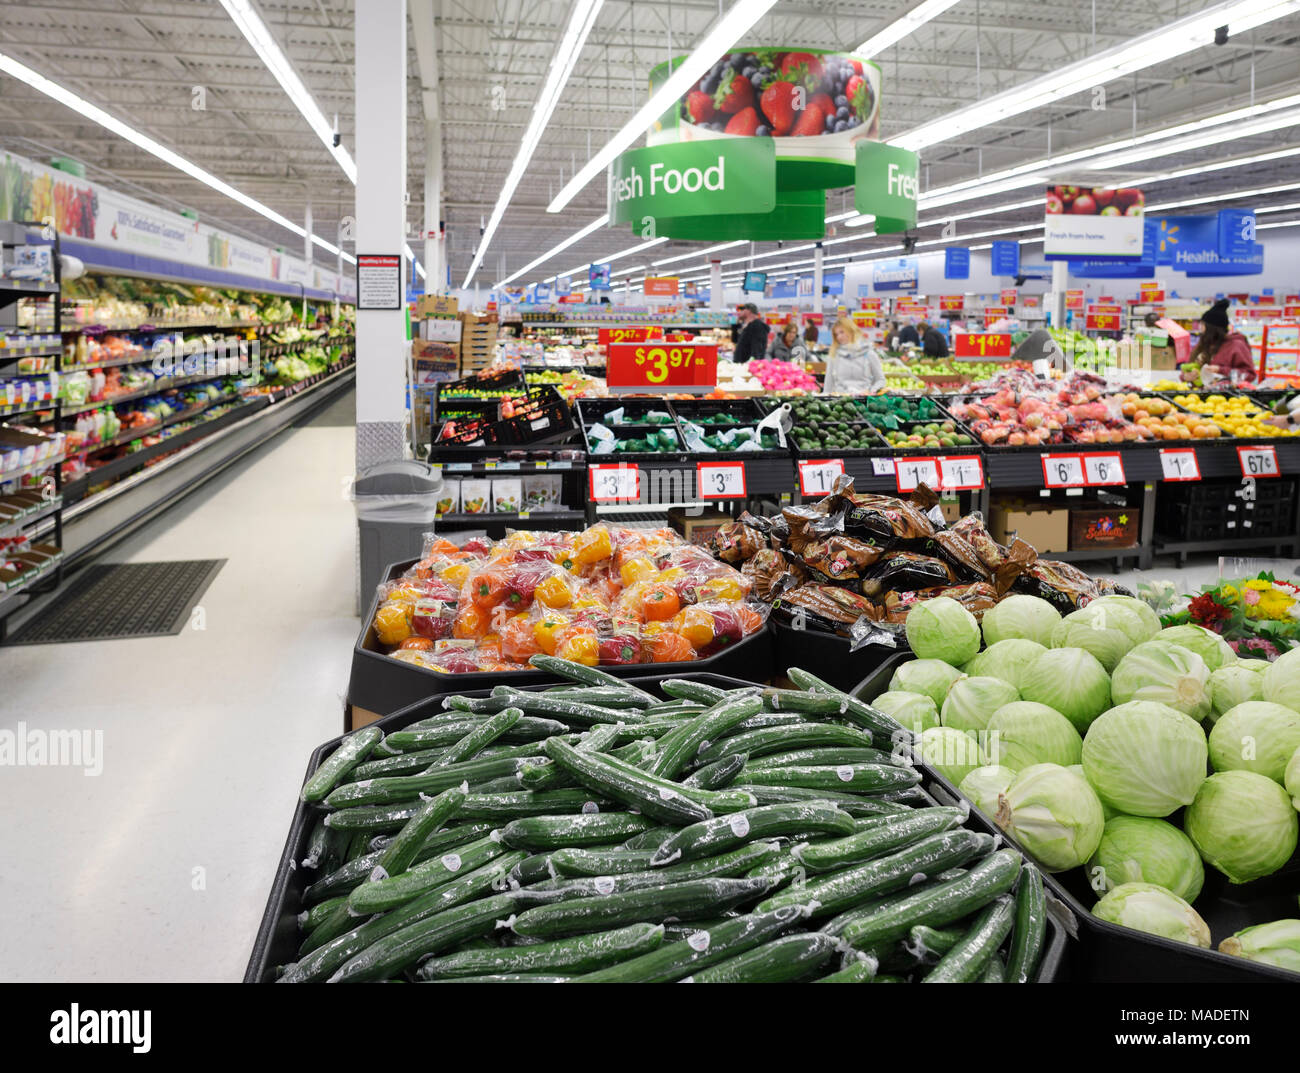 Vegetables at Walmart store fresh food section. Cucumbers, cabbage, sweet peppers. British Columbia, Canada 2017. Stock Photo